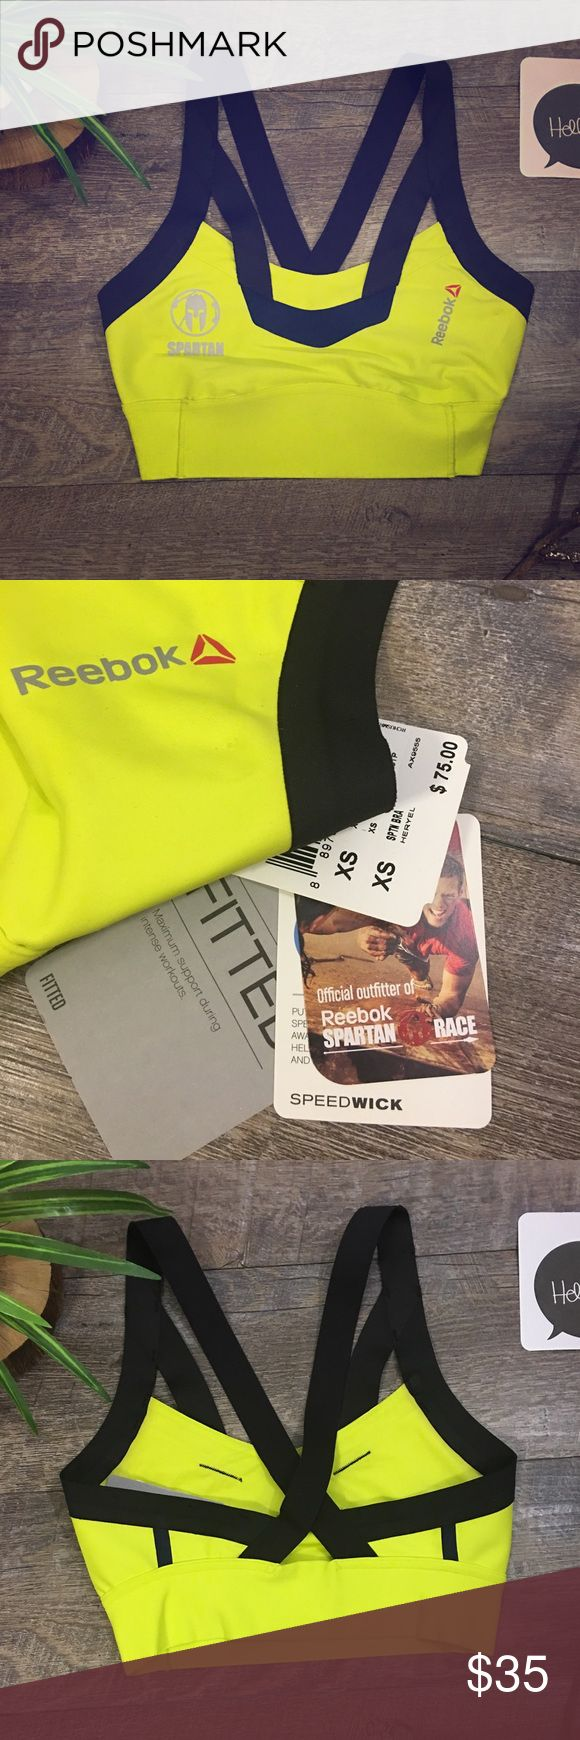 🏃🏼‍♀️SPARTAN RACE REEBOK SPEEDWICK SPORTS BRA NWT Fitted Stretch Spartan Race SPEEDWICK Sports Bra. Test your limits with this neon yellow sports bra sponsored by the popular Spartan Race. It puts sweat in its place by wicking  moisture away from your skin, helping you stay dry and more comfortable all the way to the finish line. Reebok Intimates & Sleepwear Bras